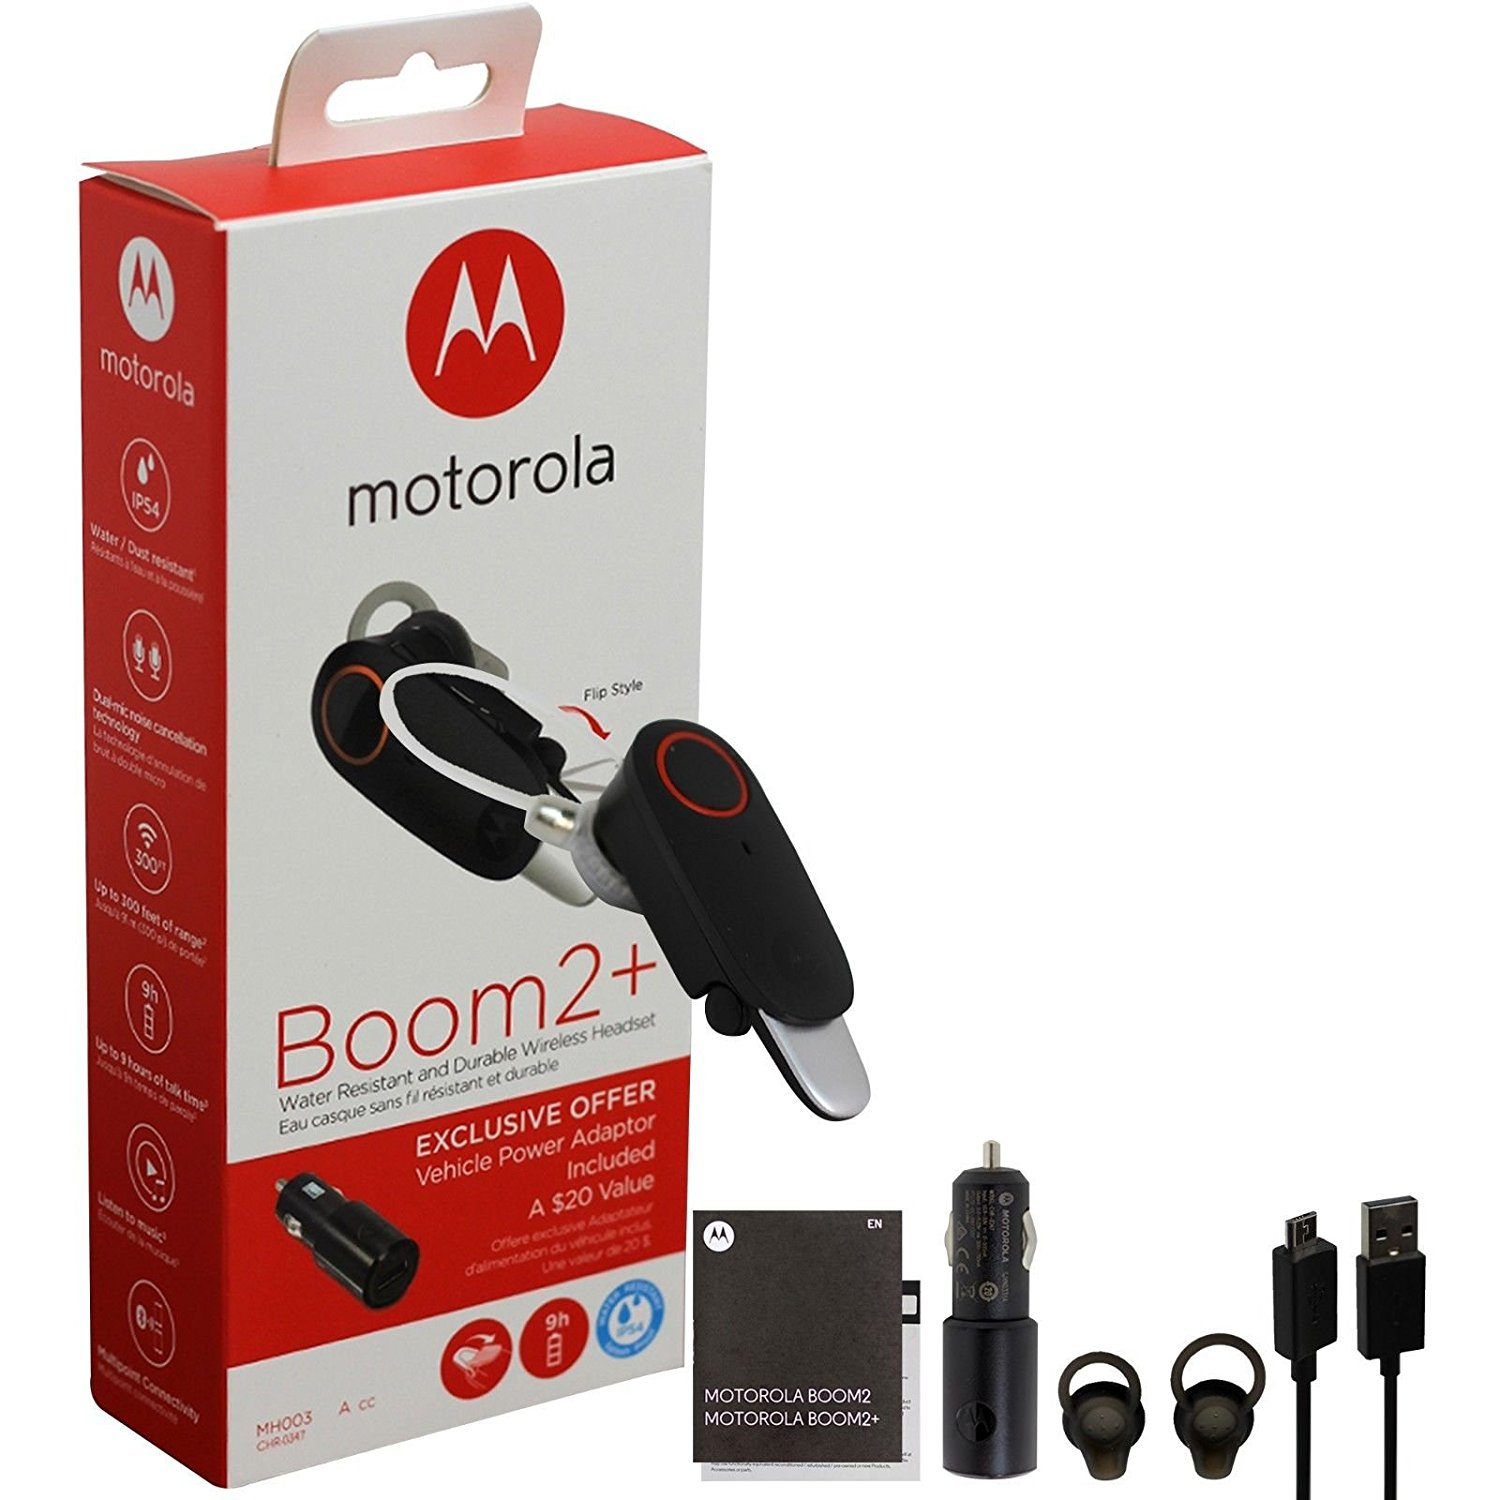 Motorola Boom 2+ Water Resistant & Durable Wireless Headset with Car Charger